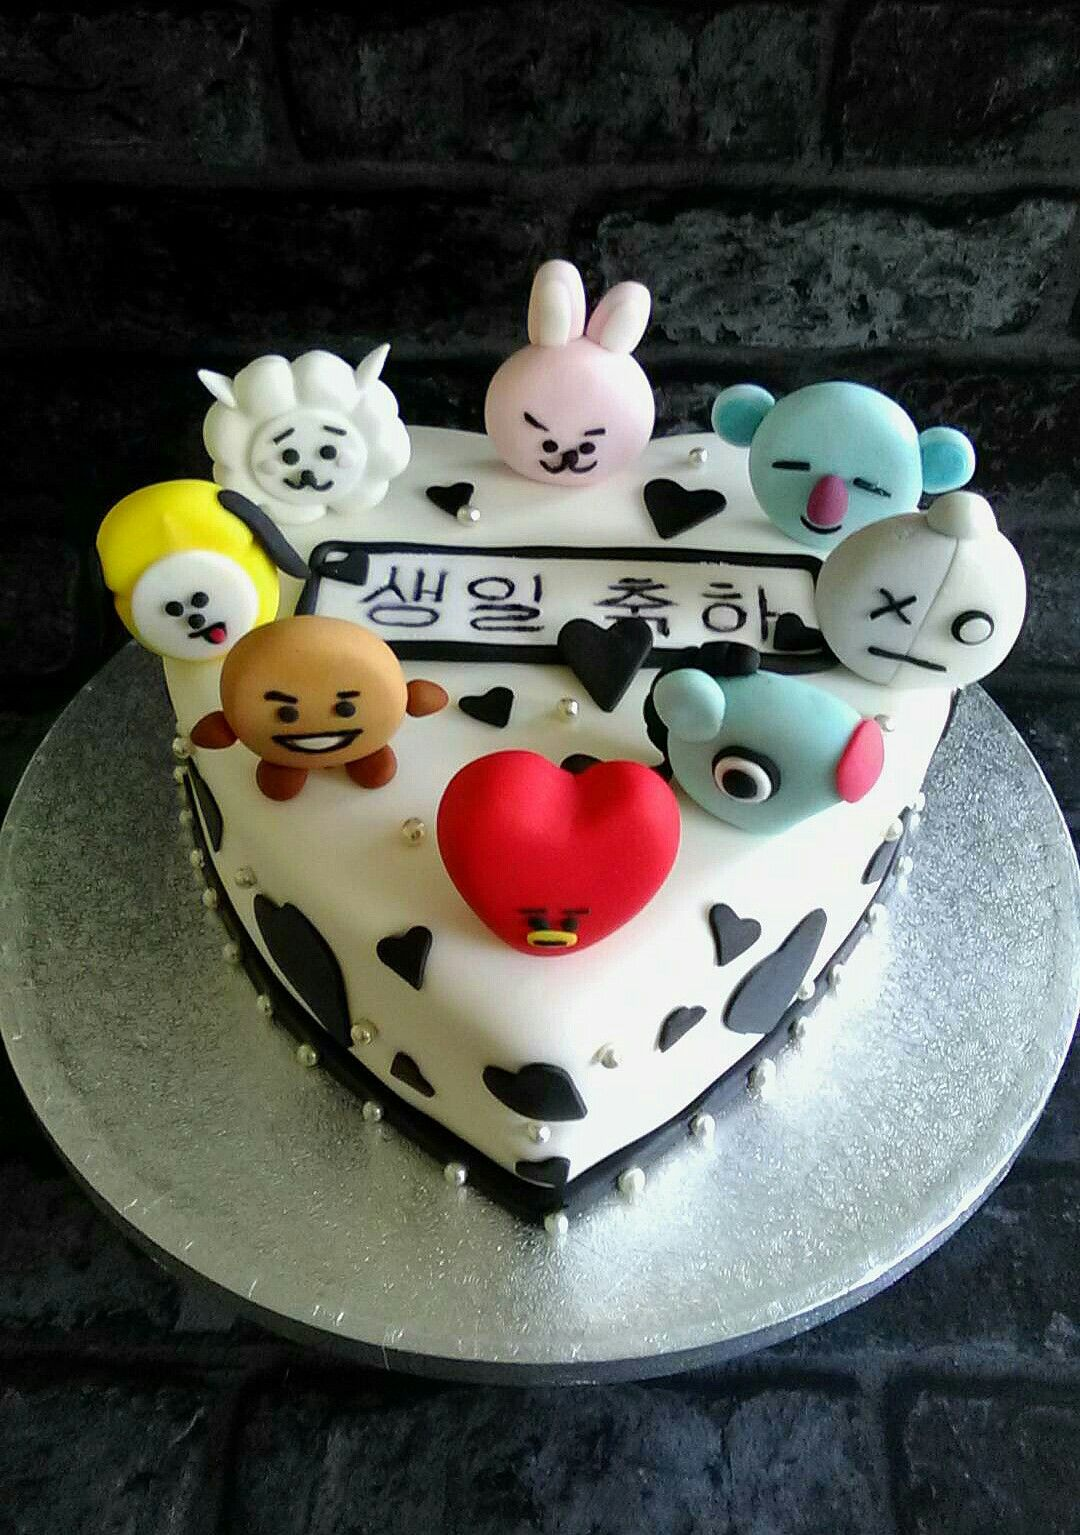 Bts Birthday Cake Bts Cake Cake Designs Birthday Bts Birthdays